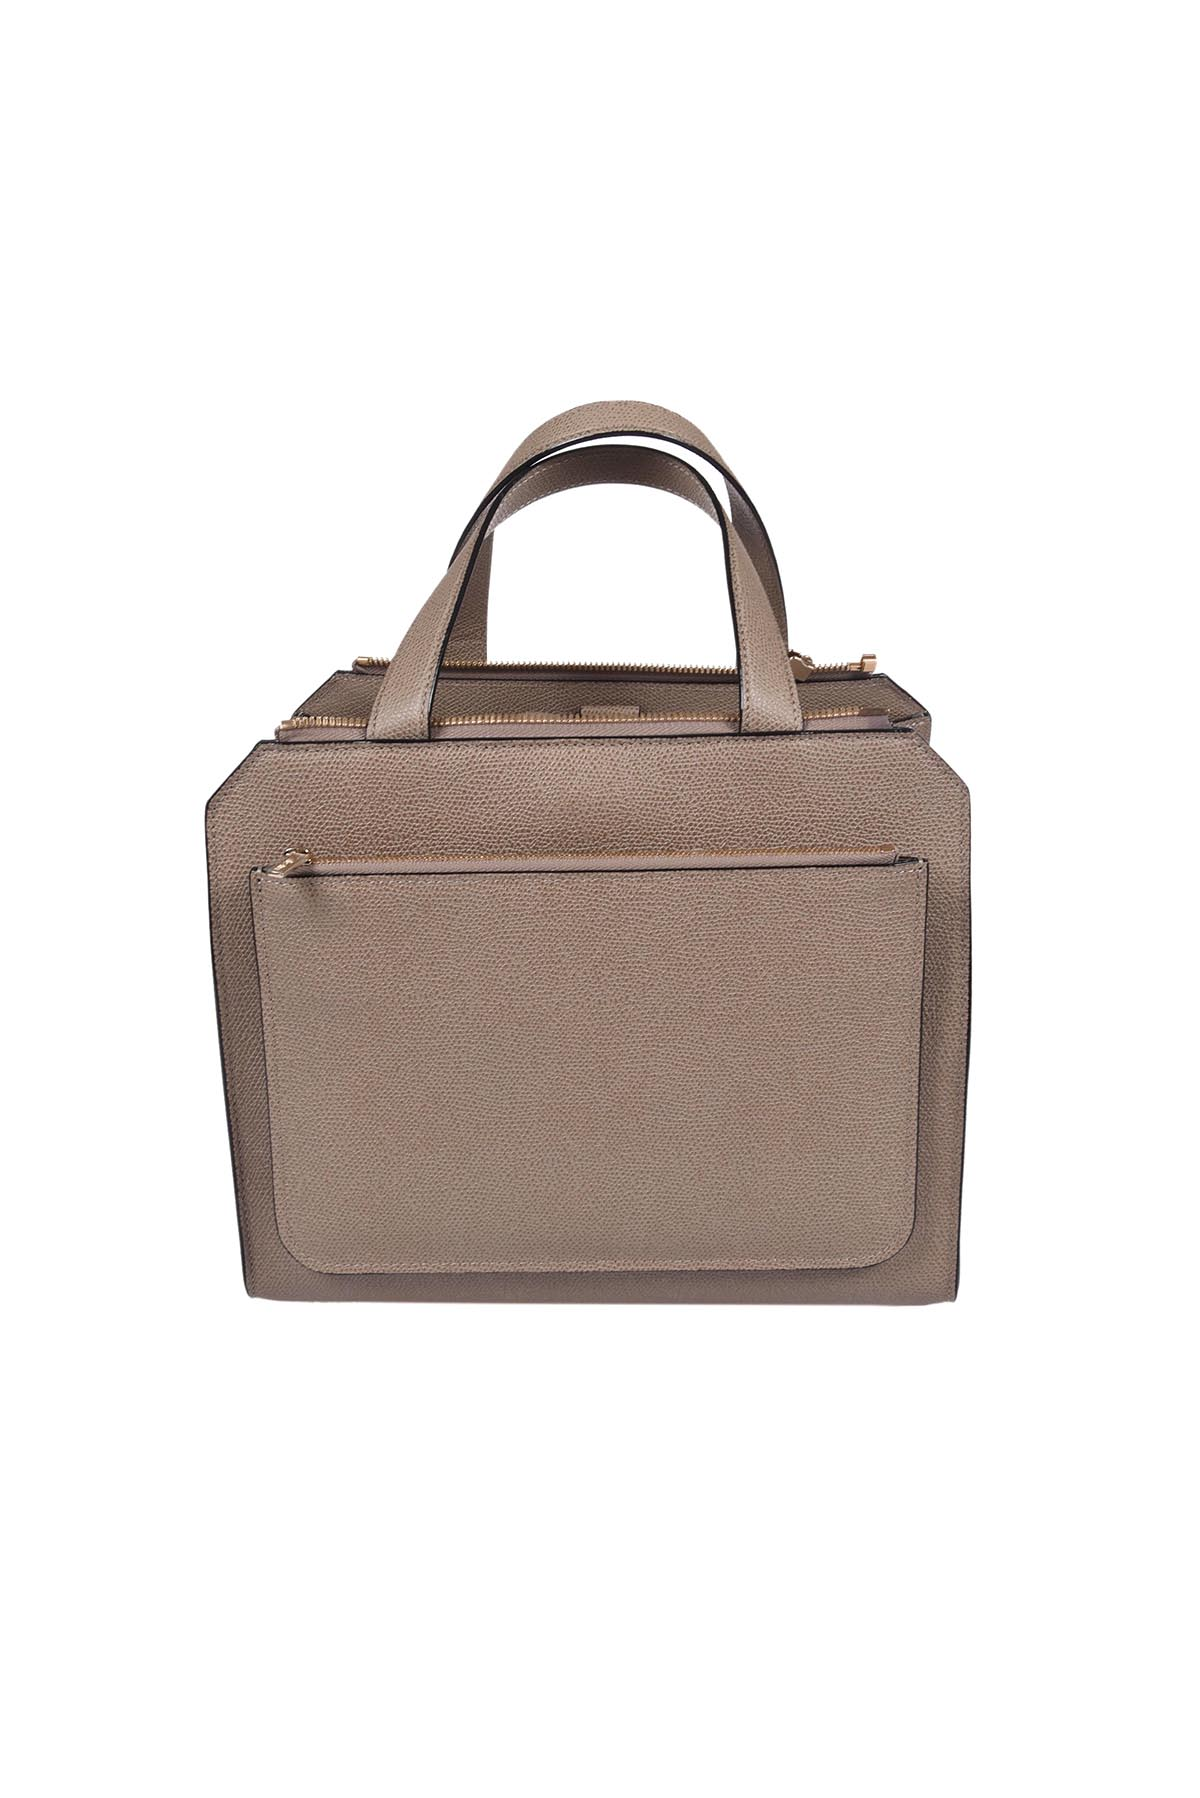 Valextra Passepartout Medium Bag